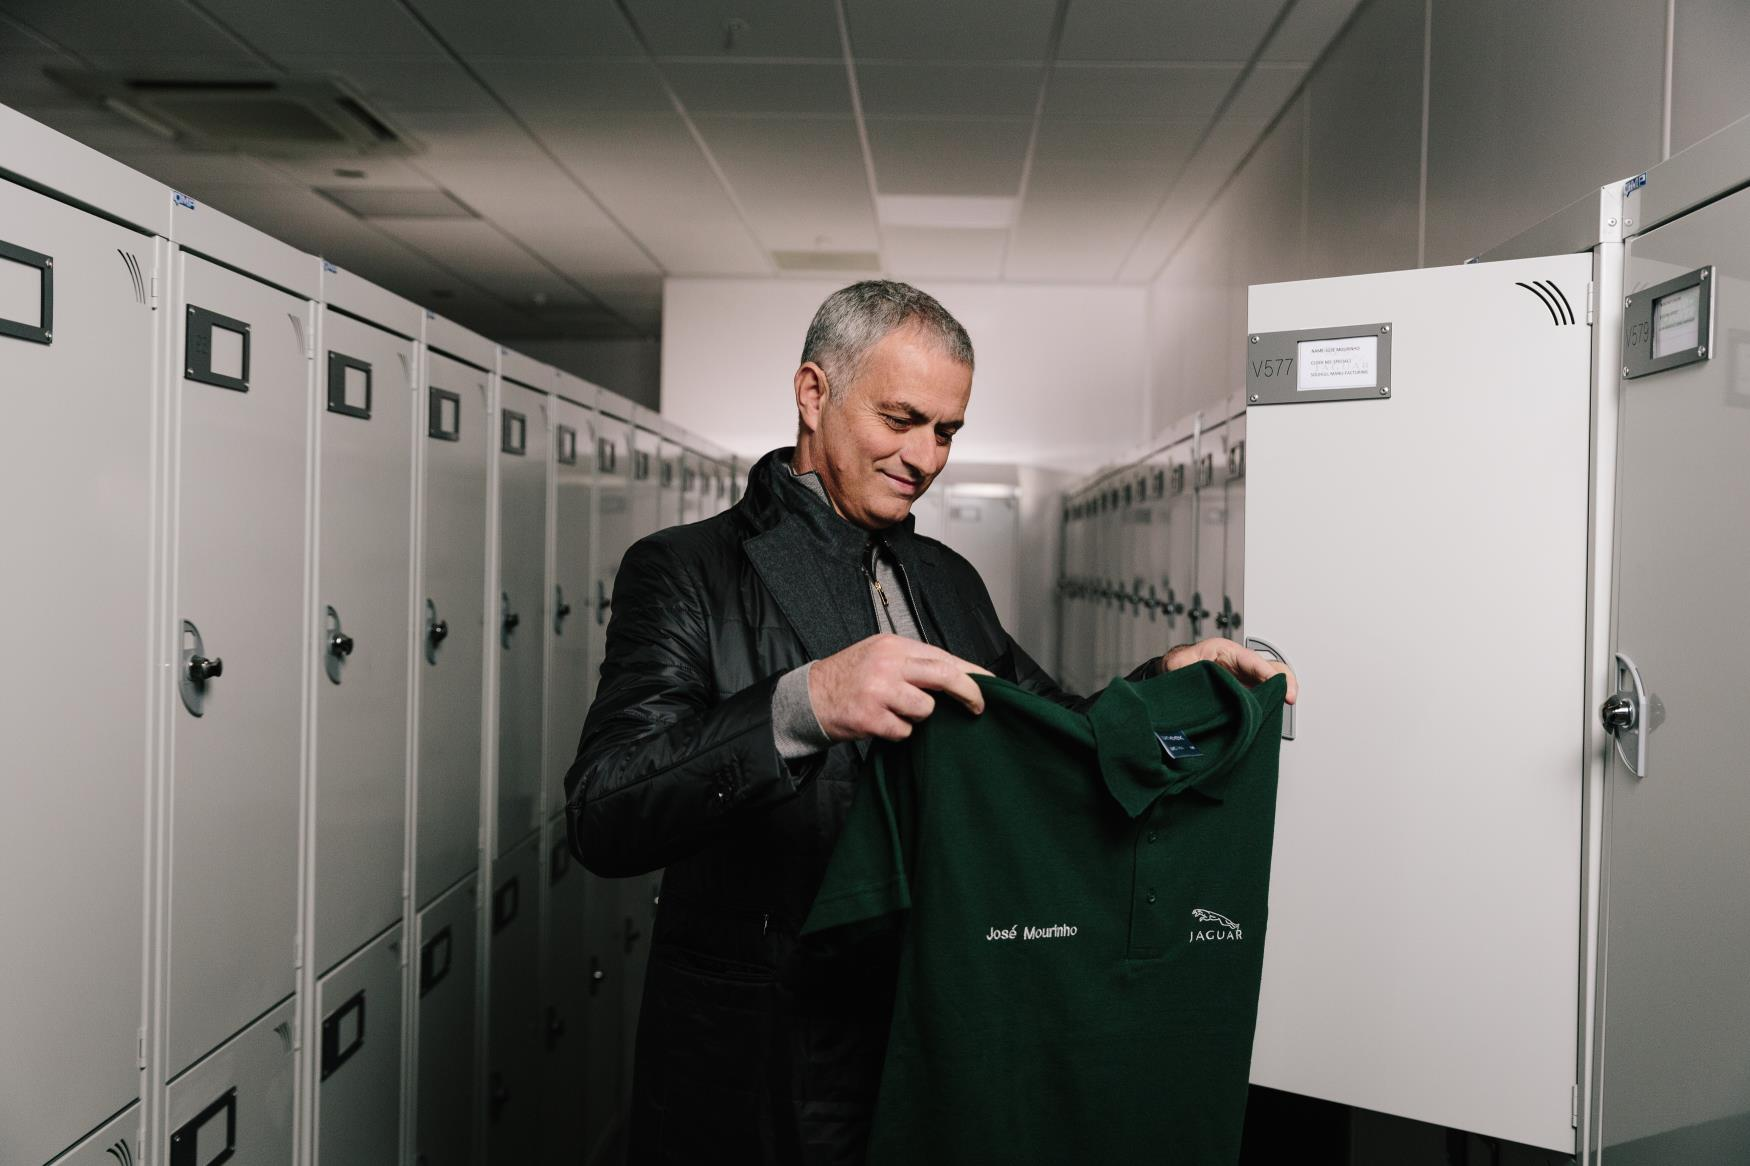 Jose Mourinho Pays Surprise Visit To Jaguar